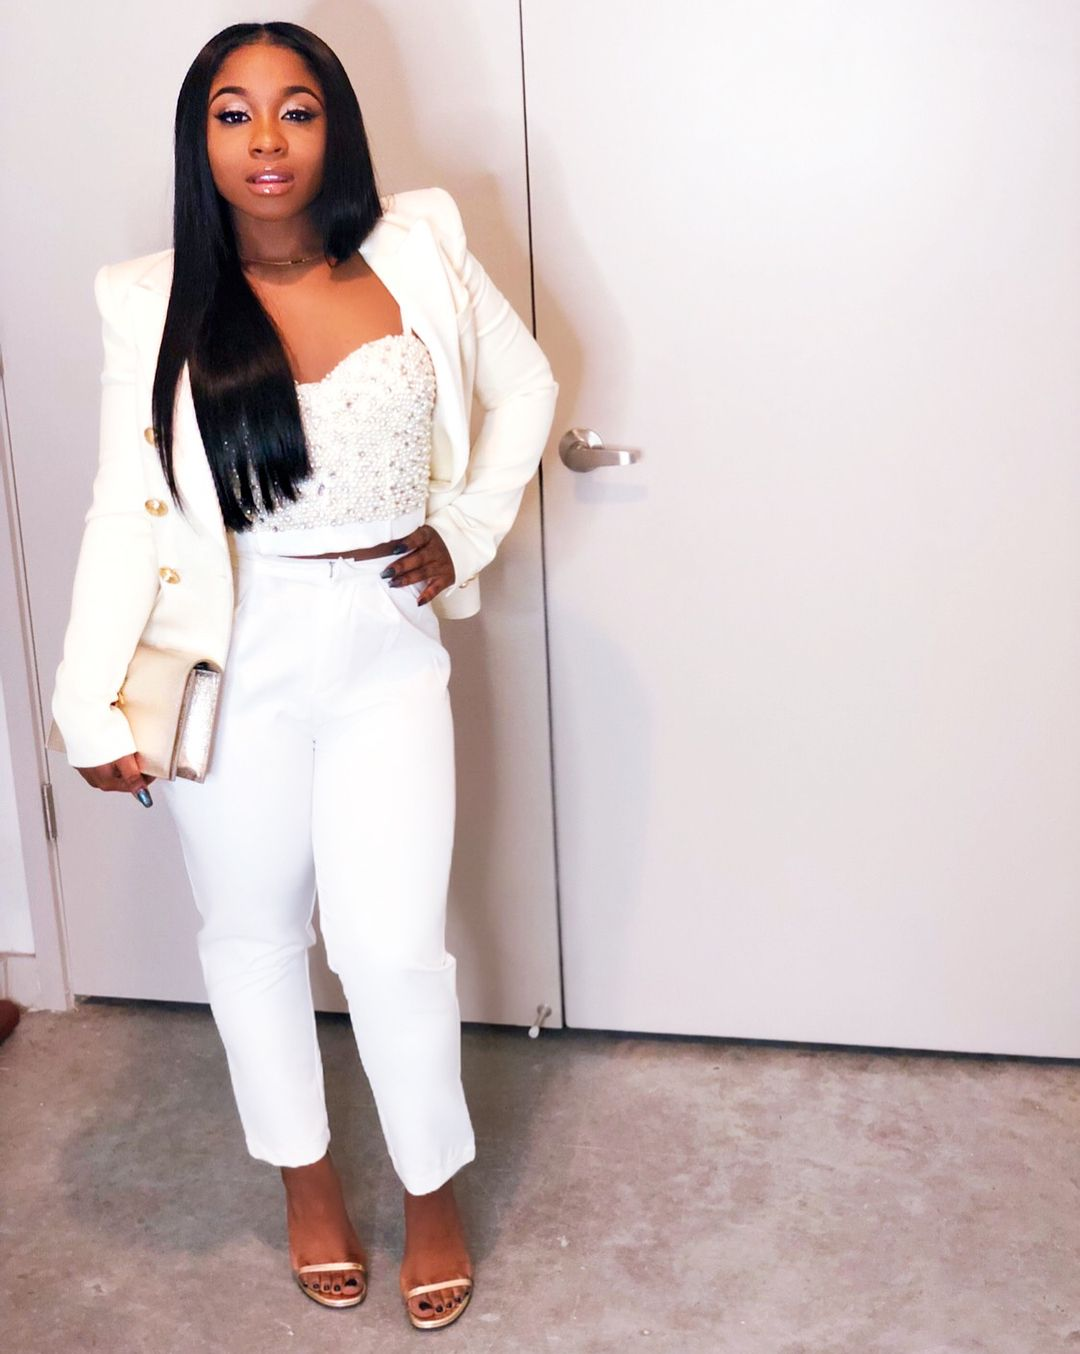 Reginae Carter | Cool outfits, Outfits, Cute outfits